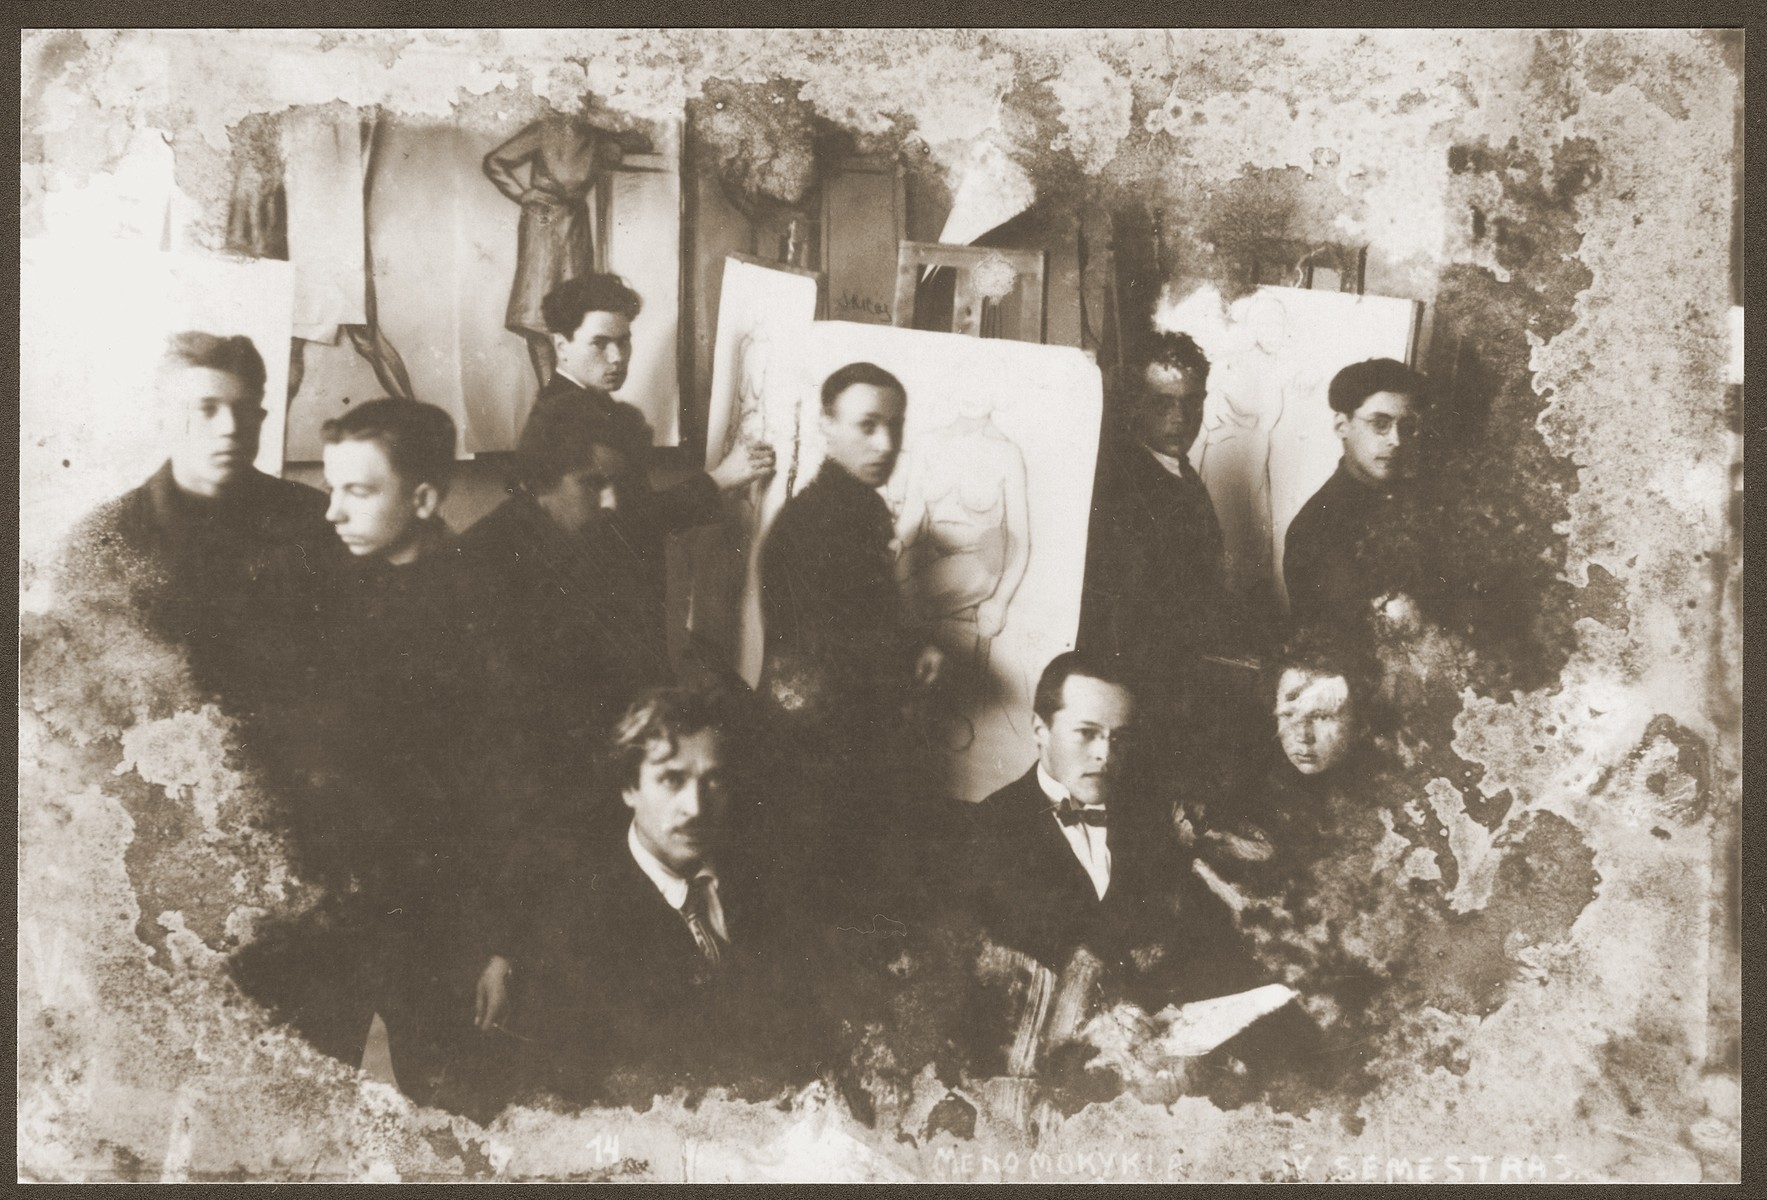 Damaged photograph of a class at the Kaunas Art Institute that survived the destruction of the Kovno ghetto.  Among those pictured is the artist Jacob Lifschitz (at the easel on the far left).  The photograph was buried with the artist's drawings shortly before the liquidation of the ghetto, and retrieved by his wife after the liberation.